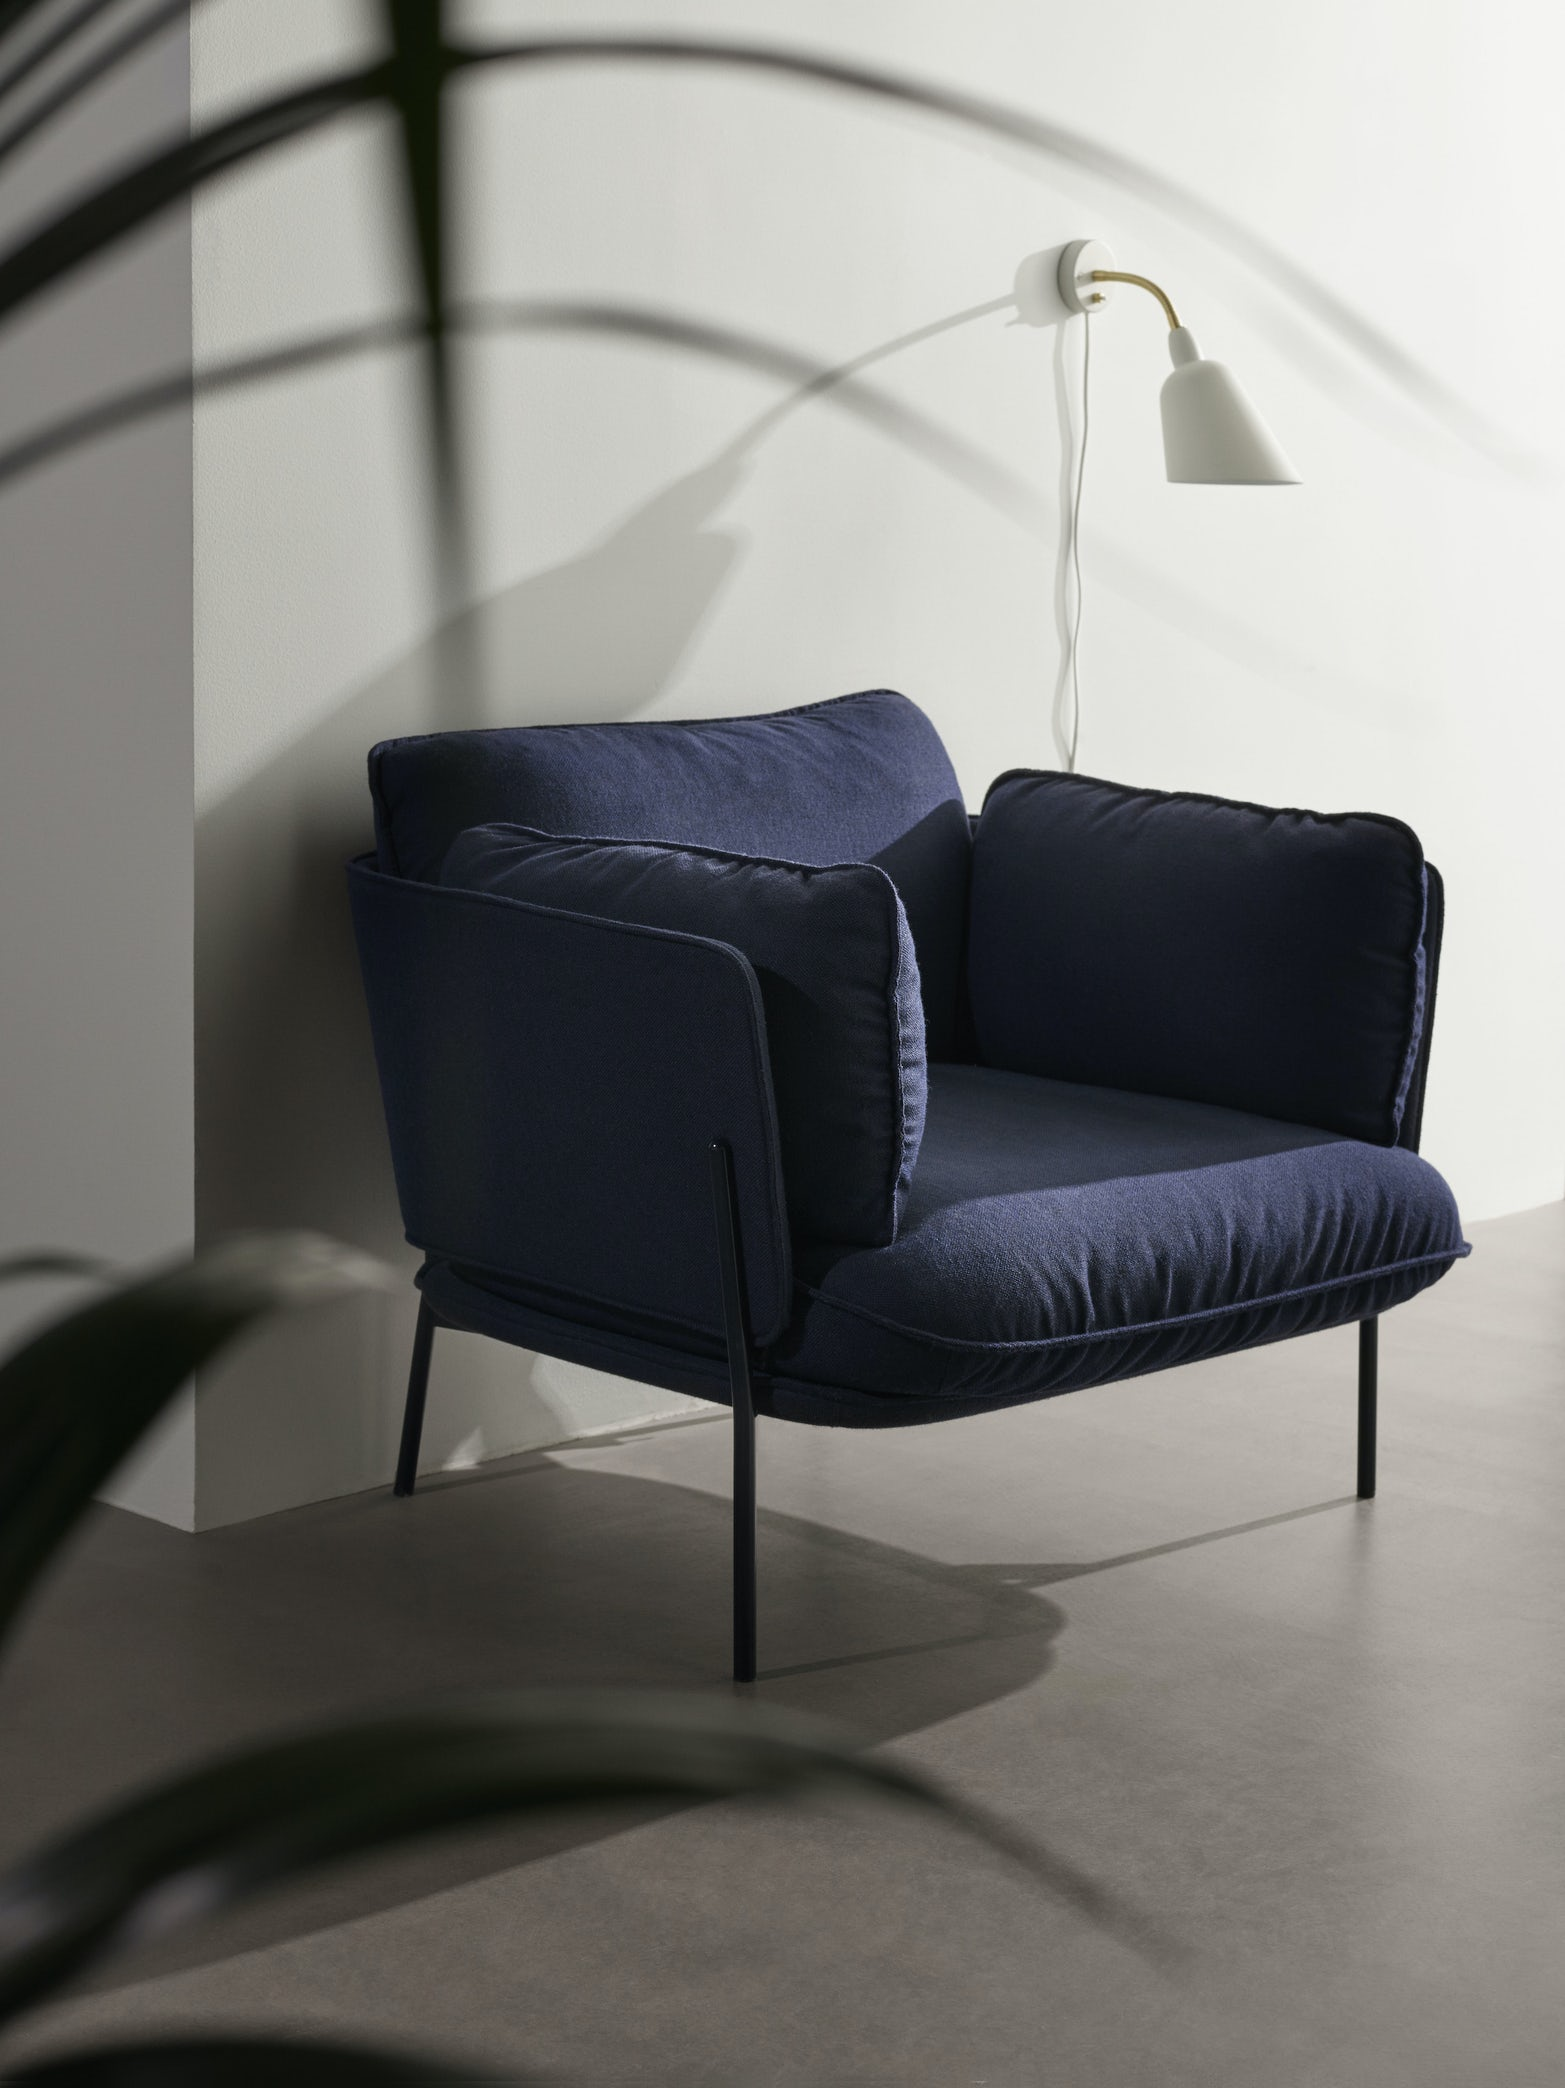 Cloud lounge chair LN1 Luca Nichetto andtradition 12